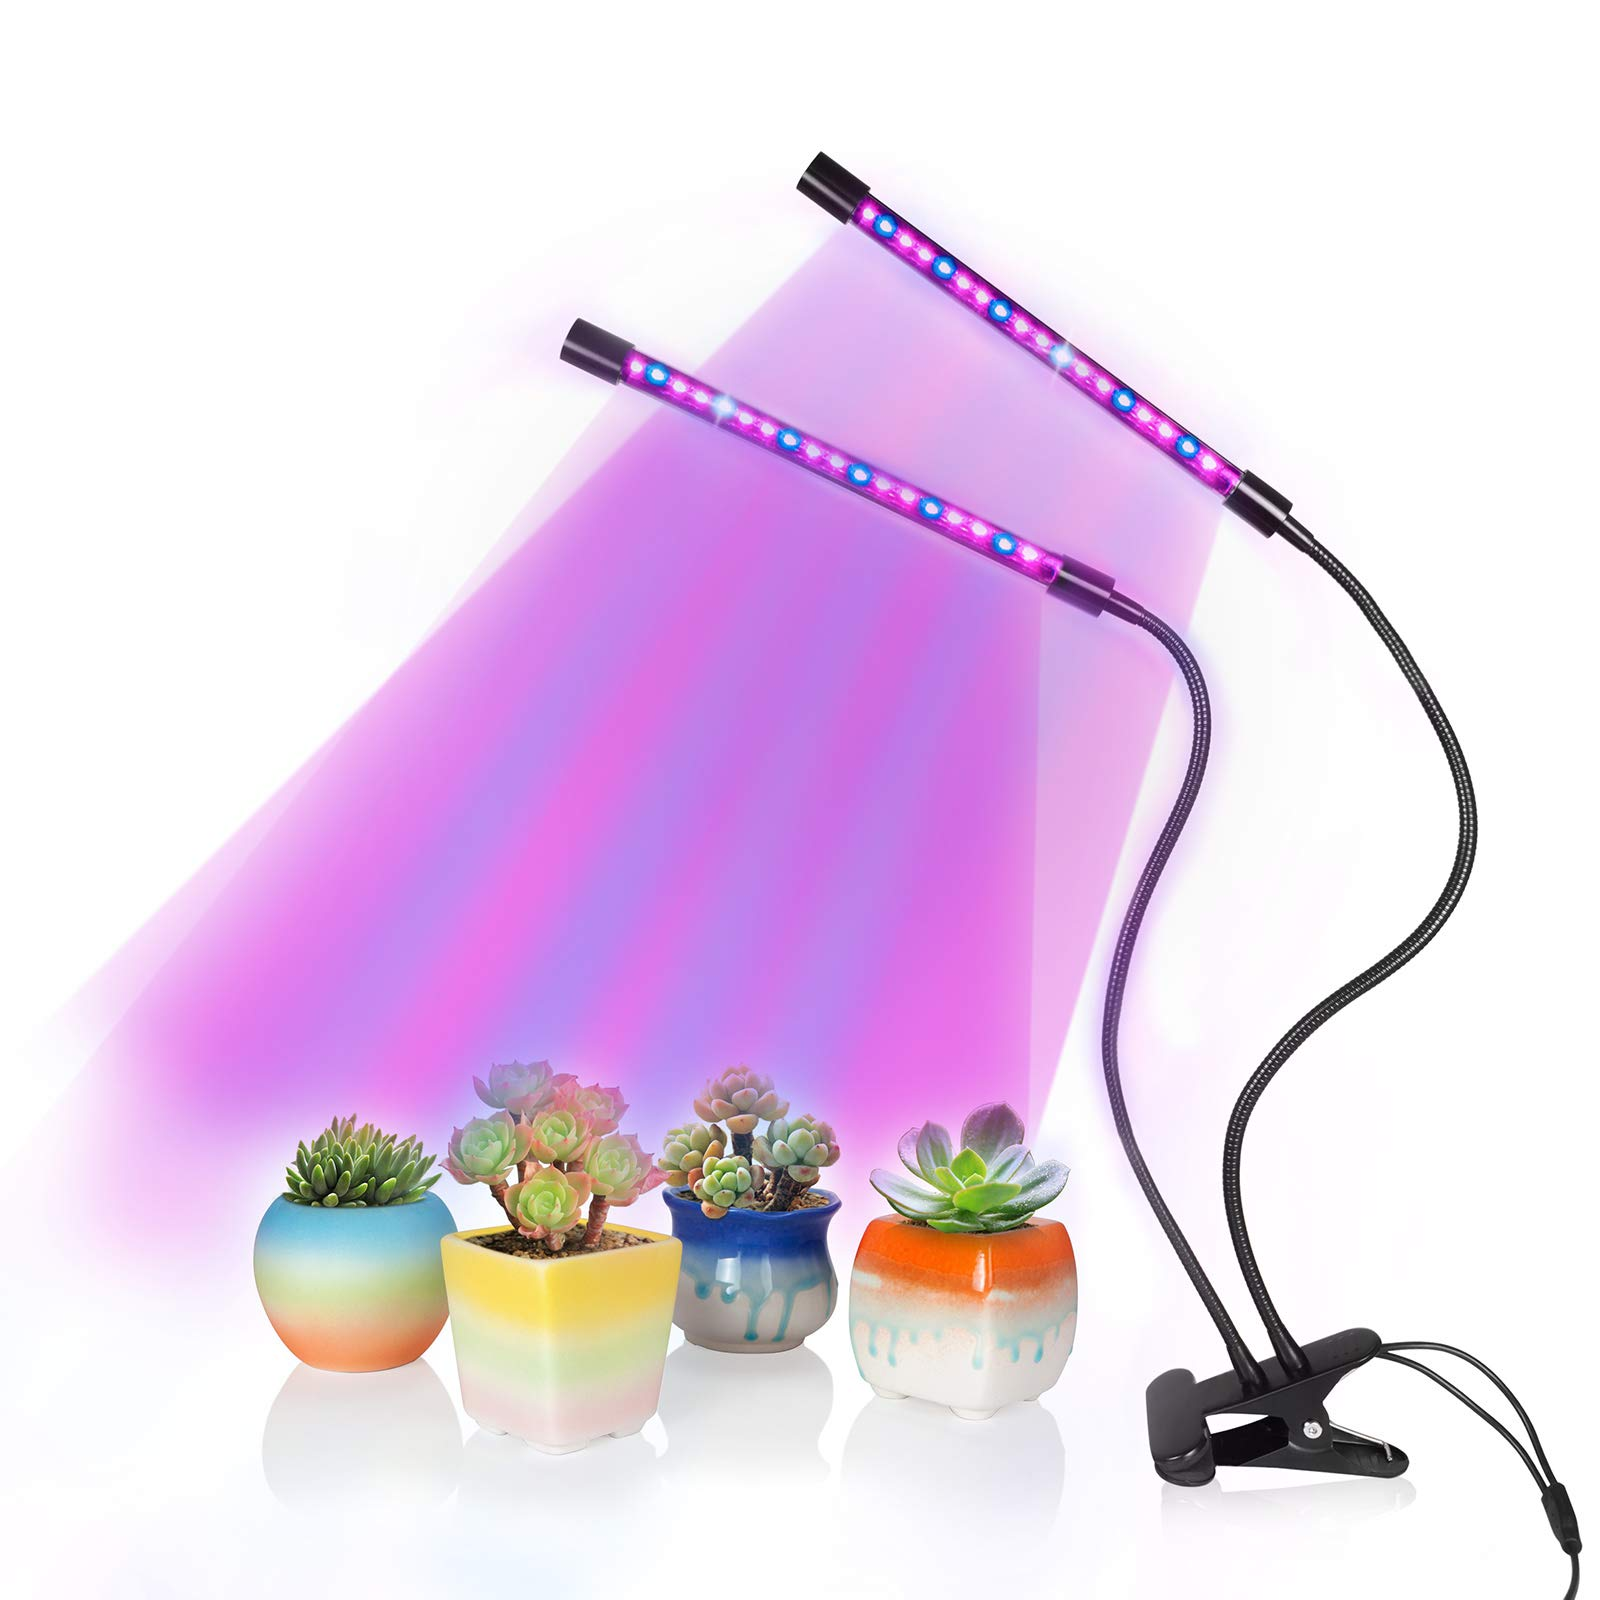 Plant Grows Lamp, SOLOFISH Dual Head 36 LED Full Spectrum Grow Lights with Brightness Adjustable and Timing Function for Plants Hydroponics Greenhouse Garden Home Office by Solofish